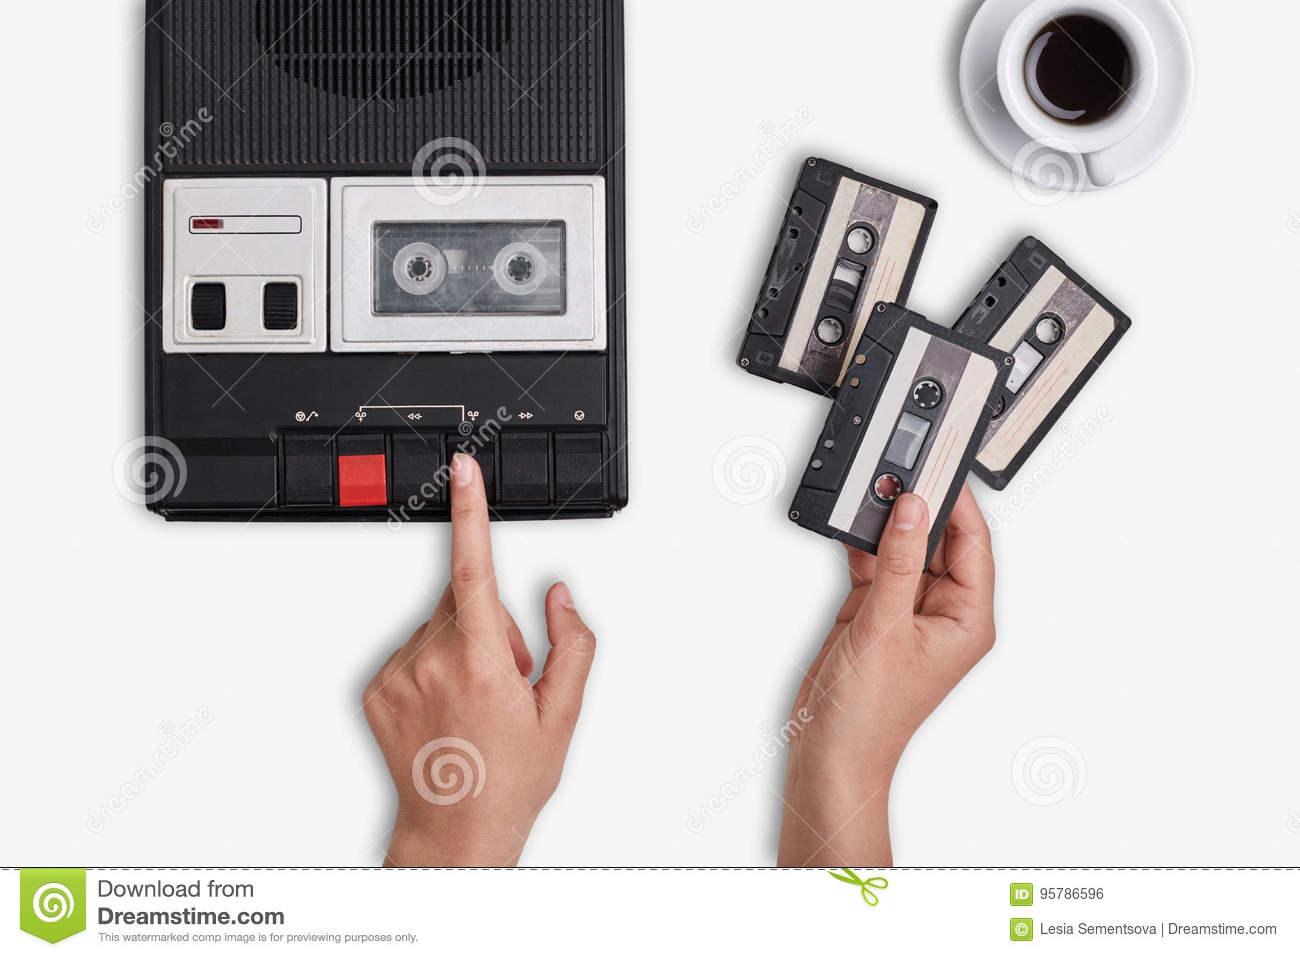 Retro tape recorder, cassettes and cup of hot coffee standing on white surface. Hands switching on cassette tape recorder changing